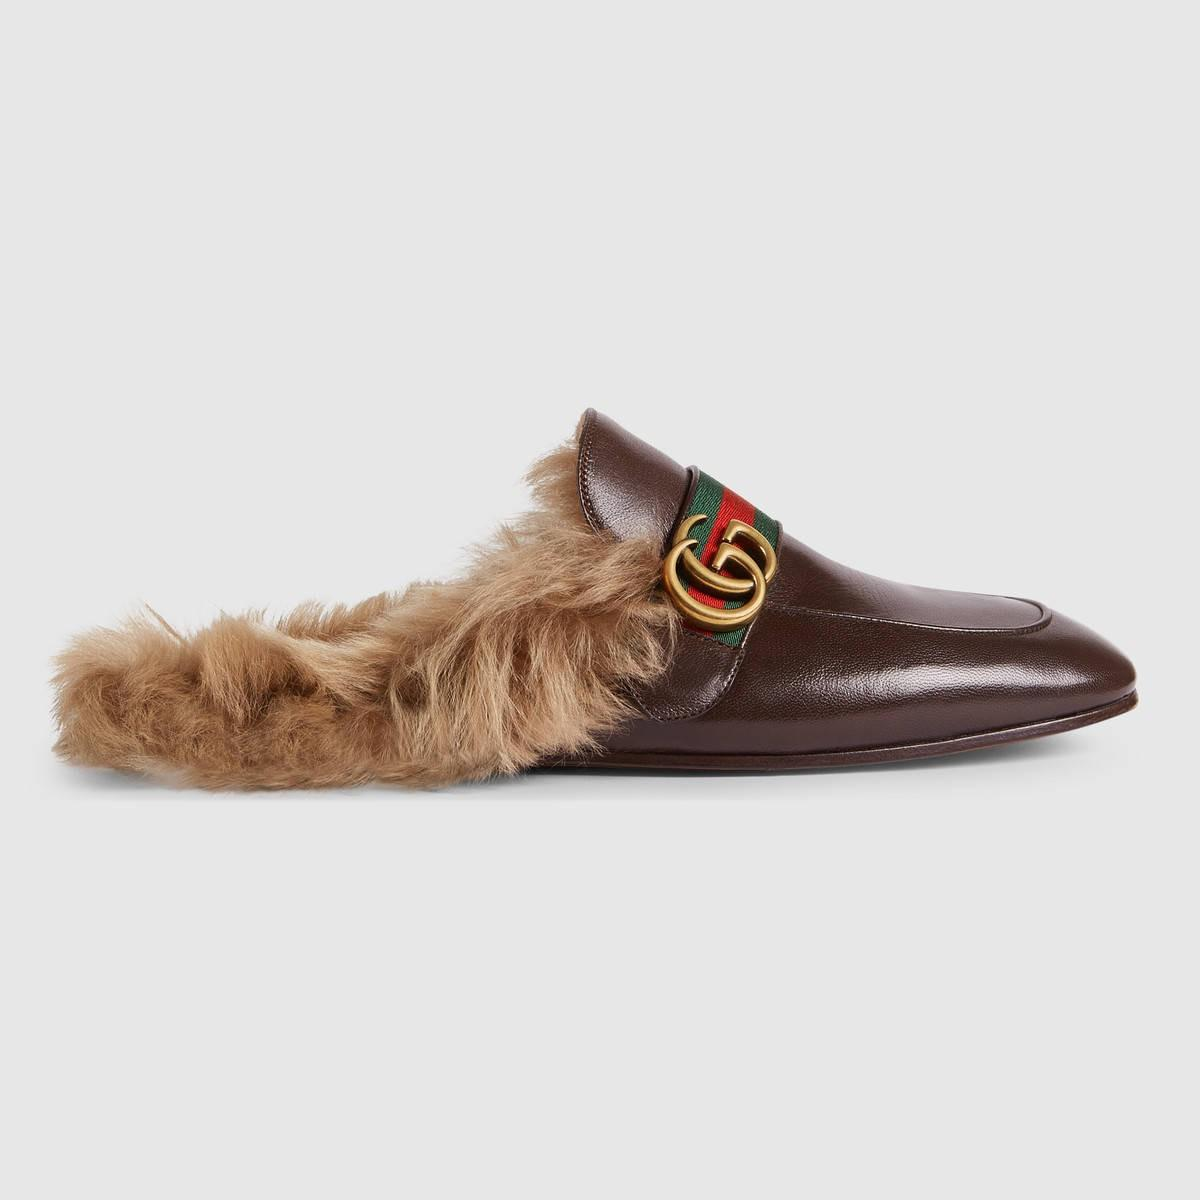 Gucci Princetown Appliqué Slippers - Brown